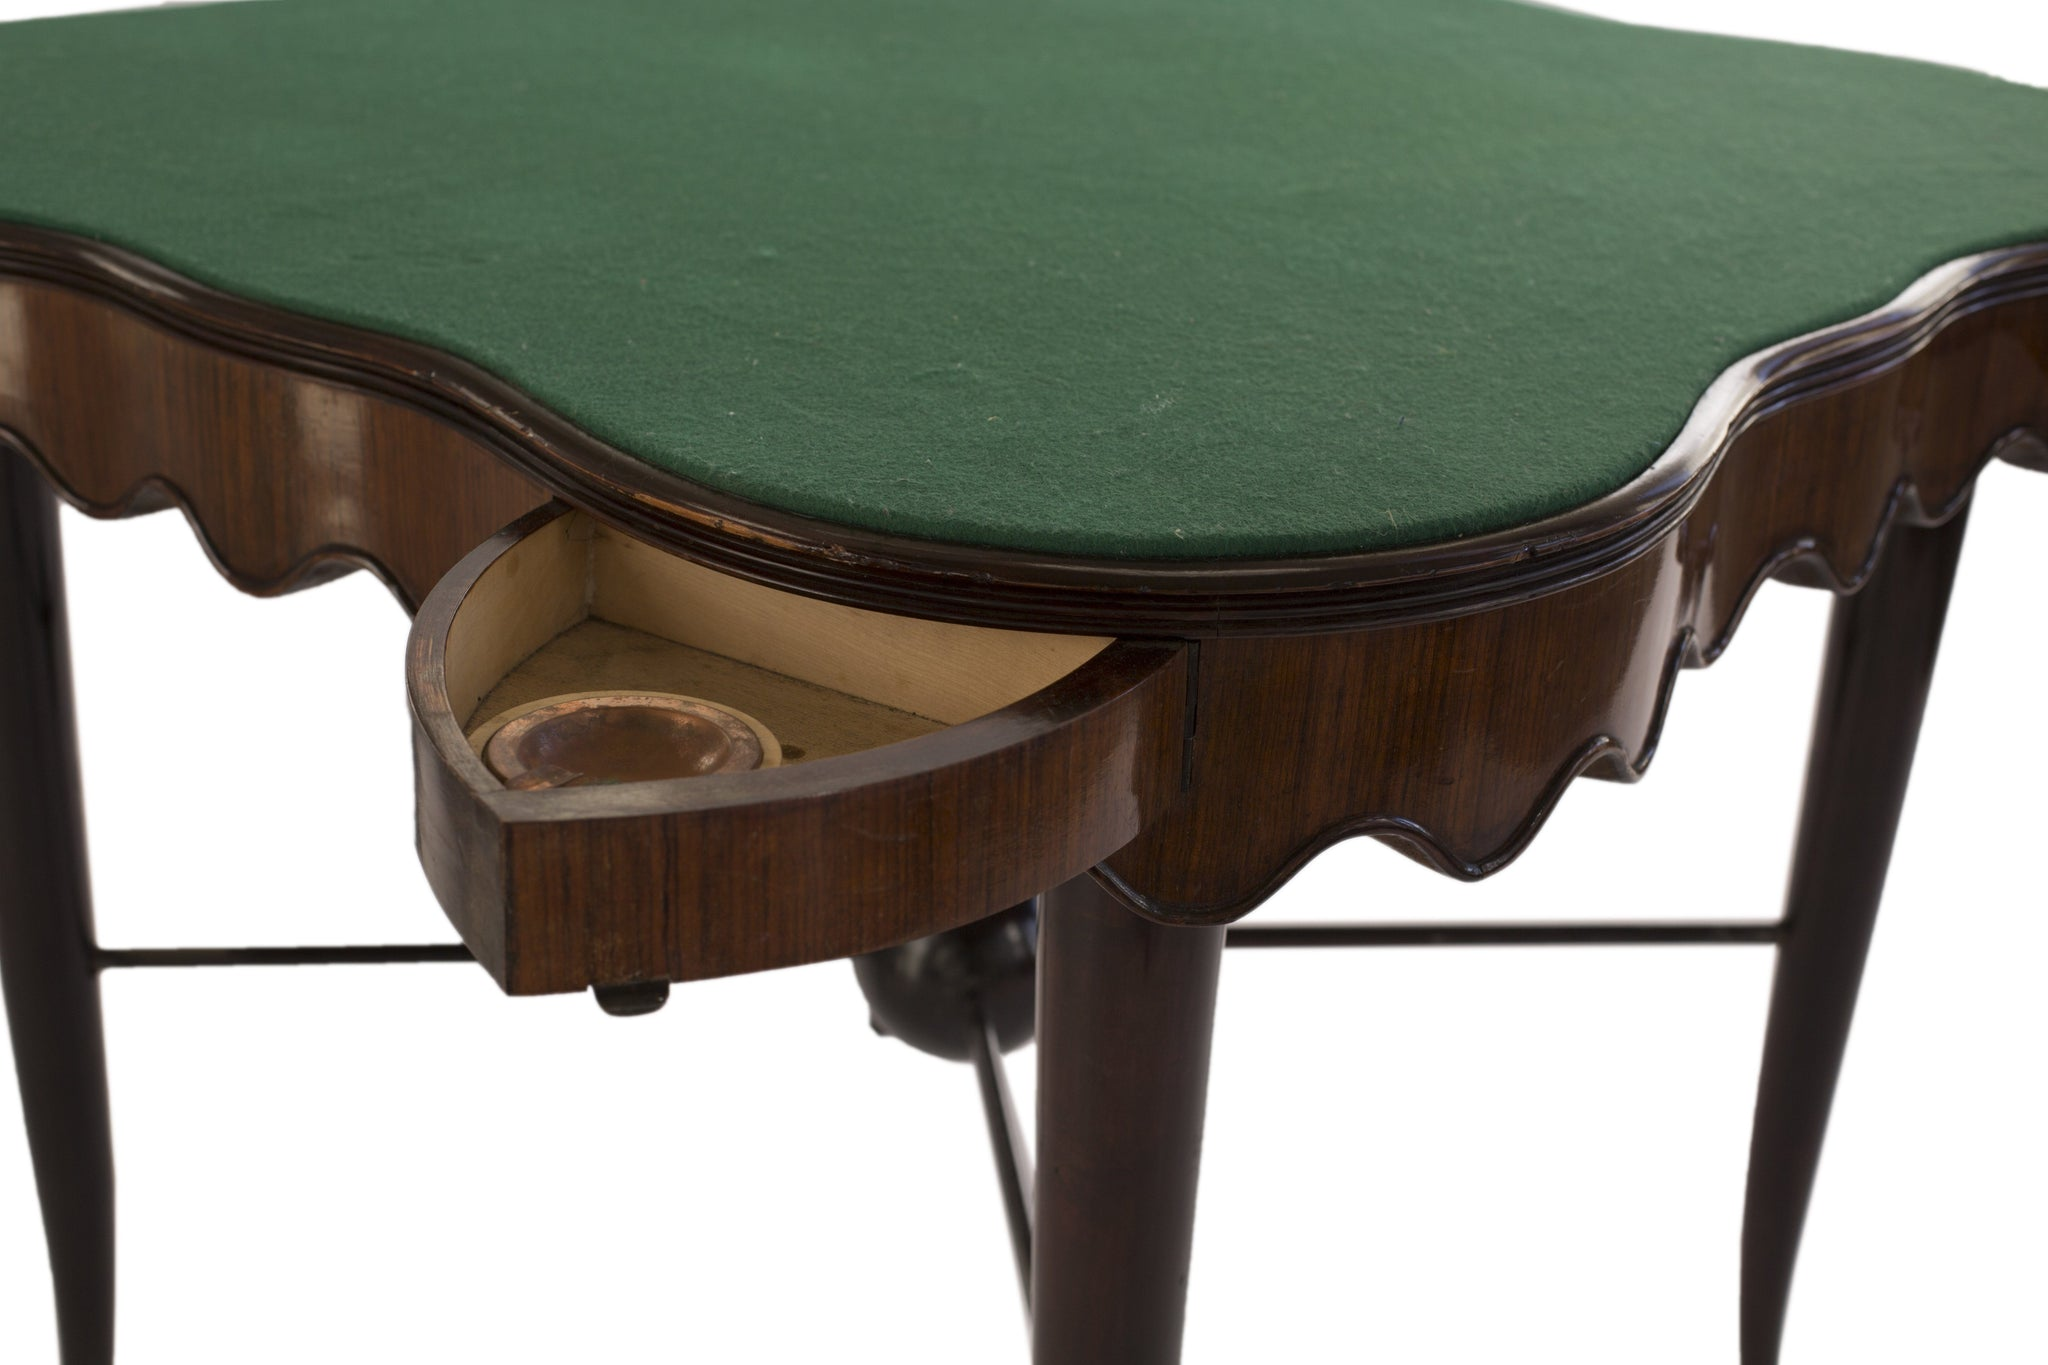 Art Deco Continental Card Table - A Modern Grand Tour